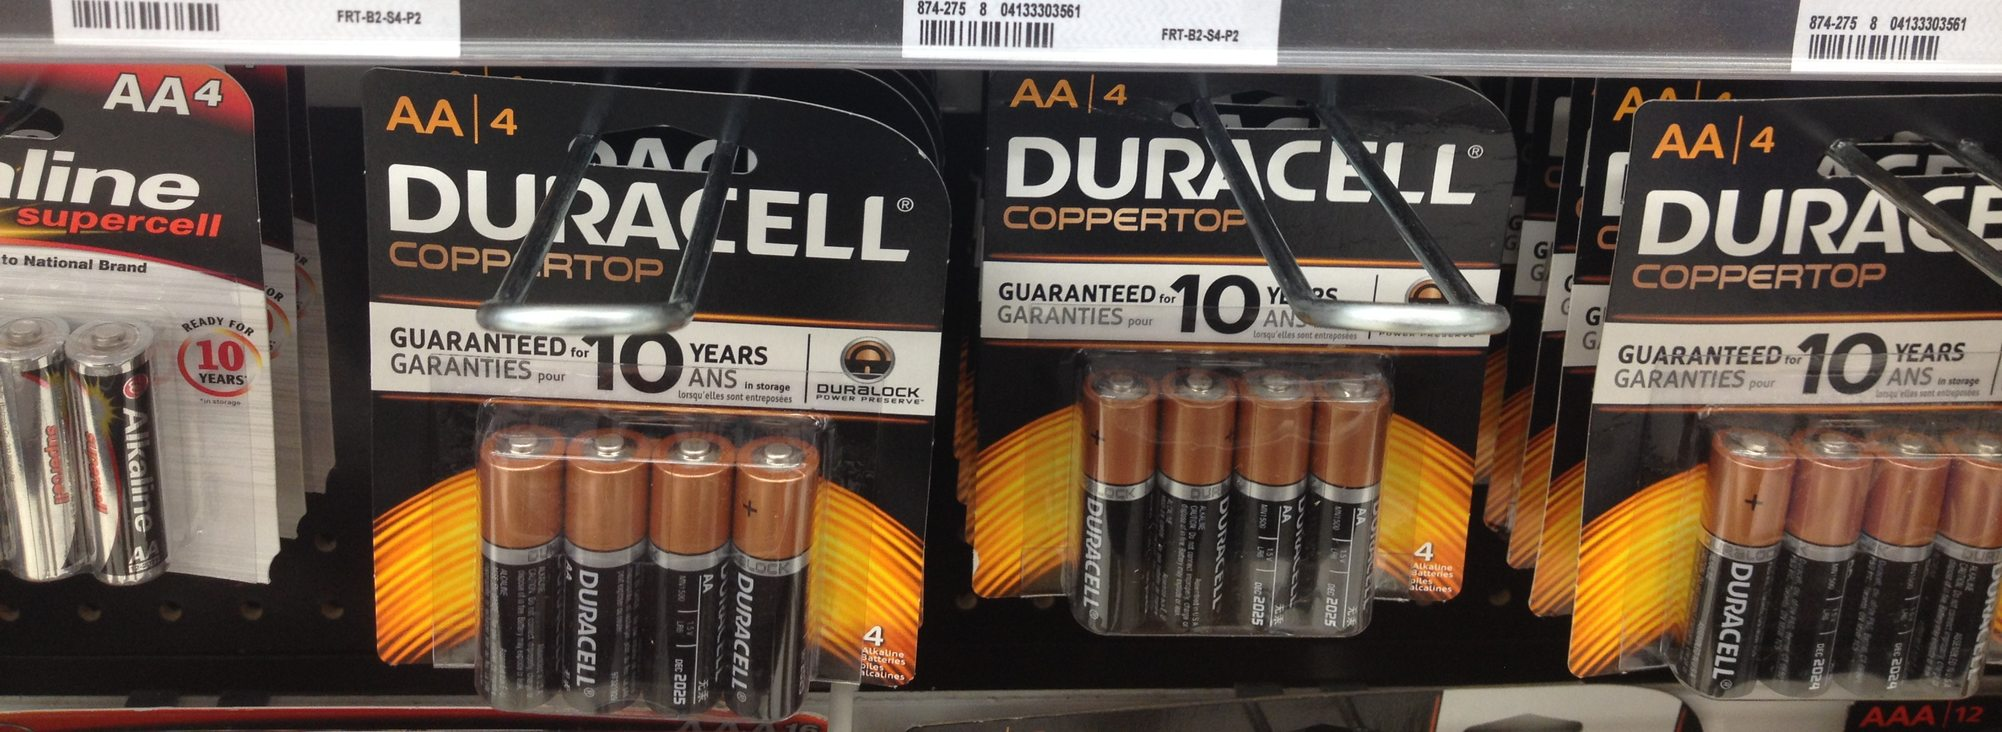 batteries on display racks in a store